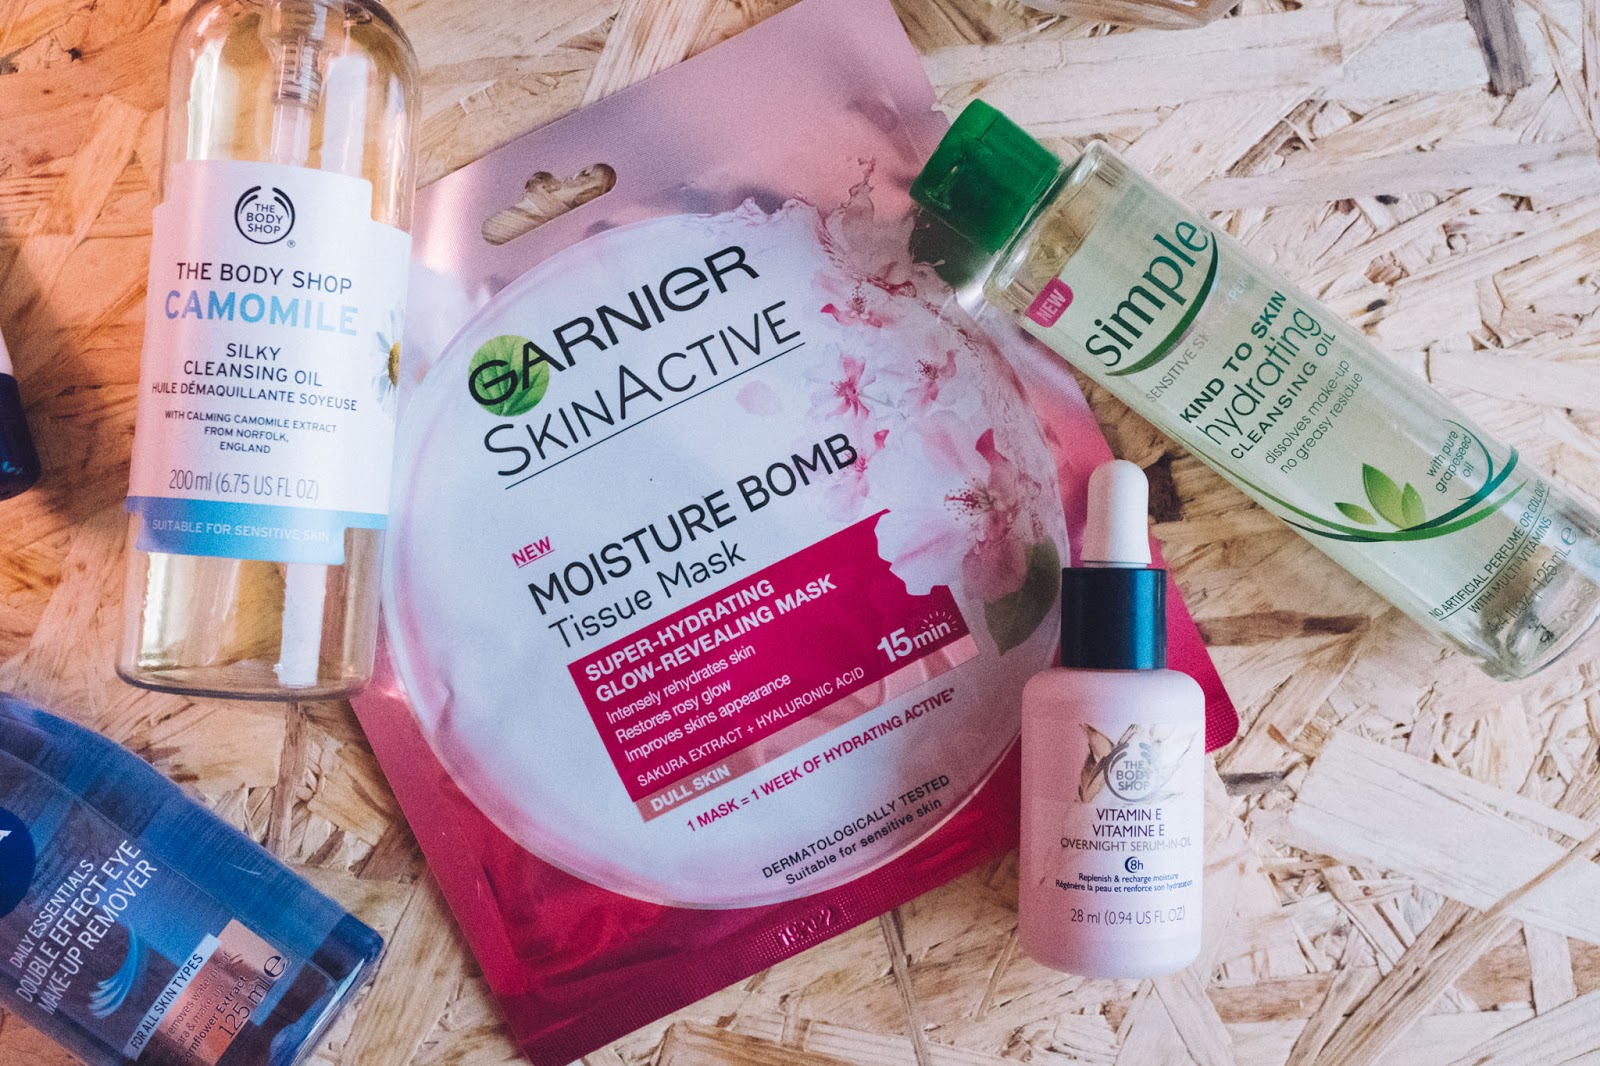 Bargain beauty buys blogger review